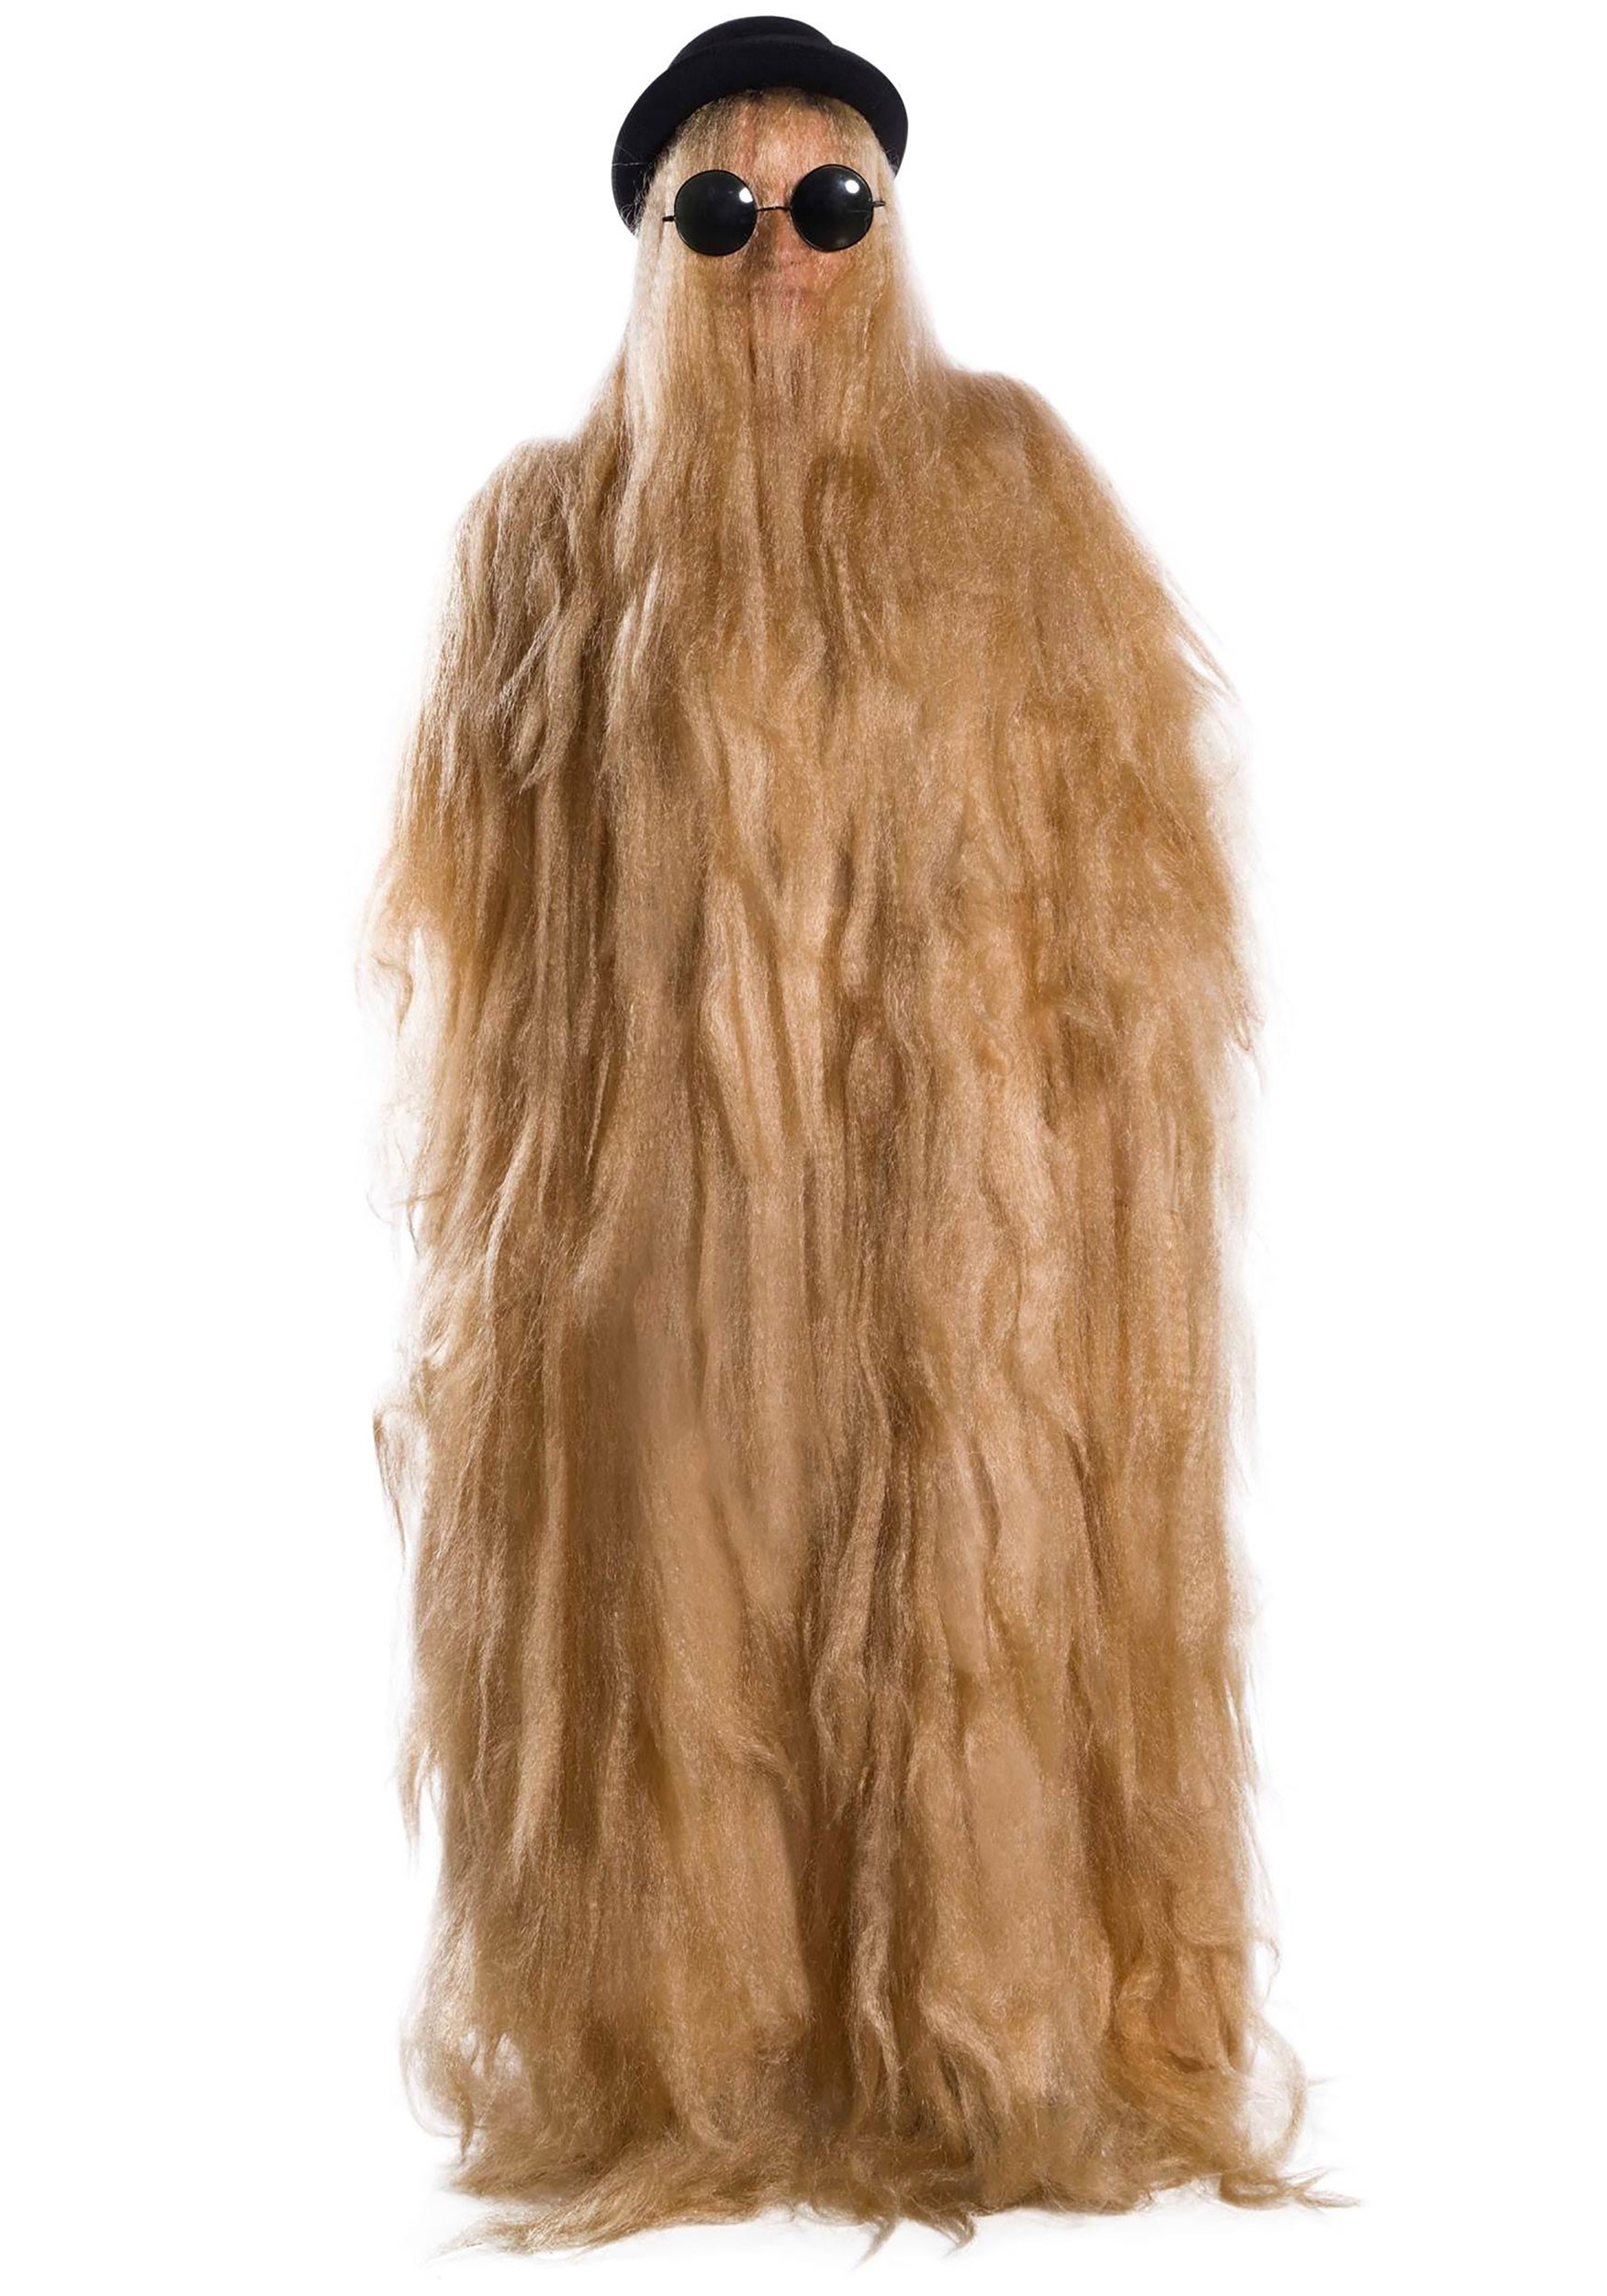 Addams Family Cousin It Costume Adults